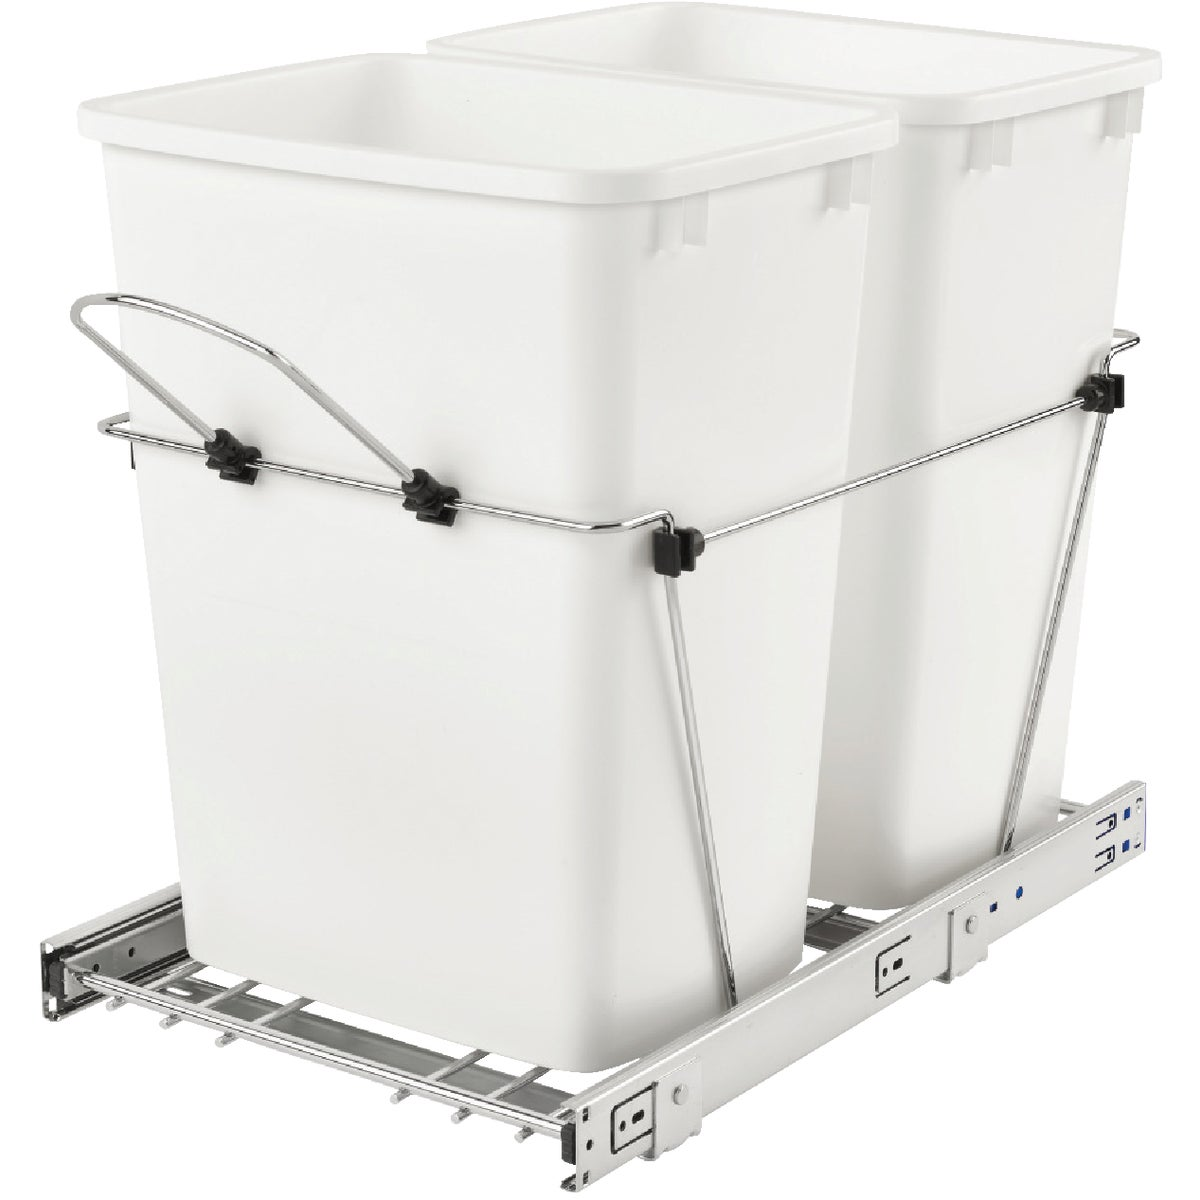 DBL 35 WASTE CONTAINER - RV-18PBC-17-5 by Rev A Shelf